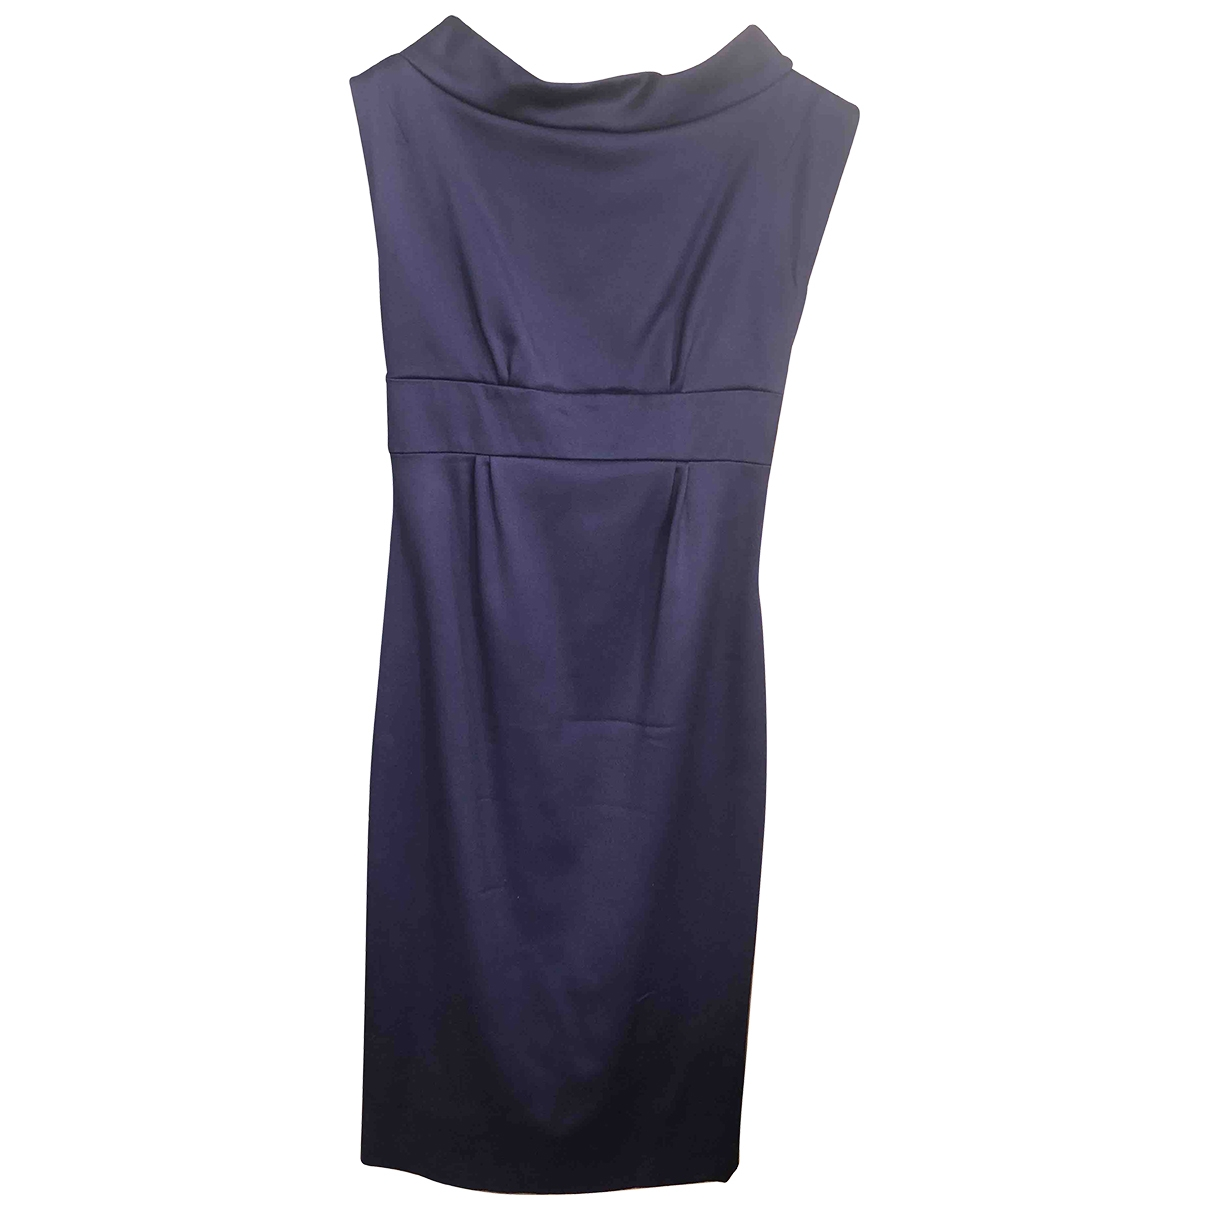 John Galliano \N Purple Wool dress for Women 36 FR